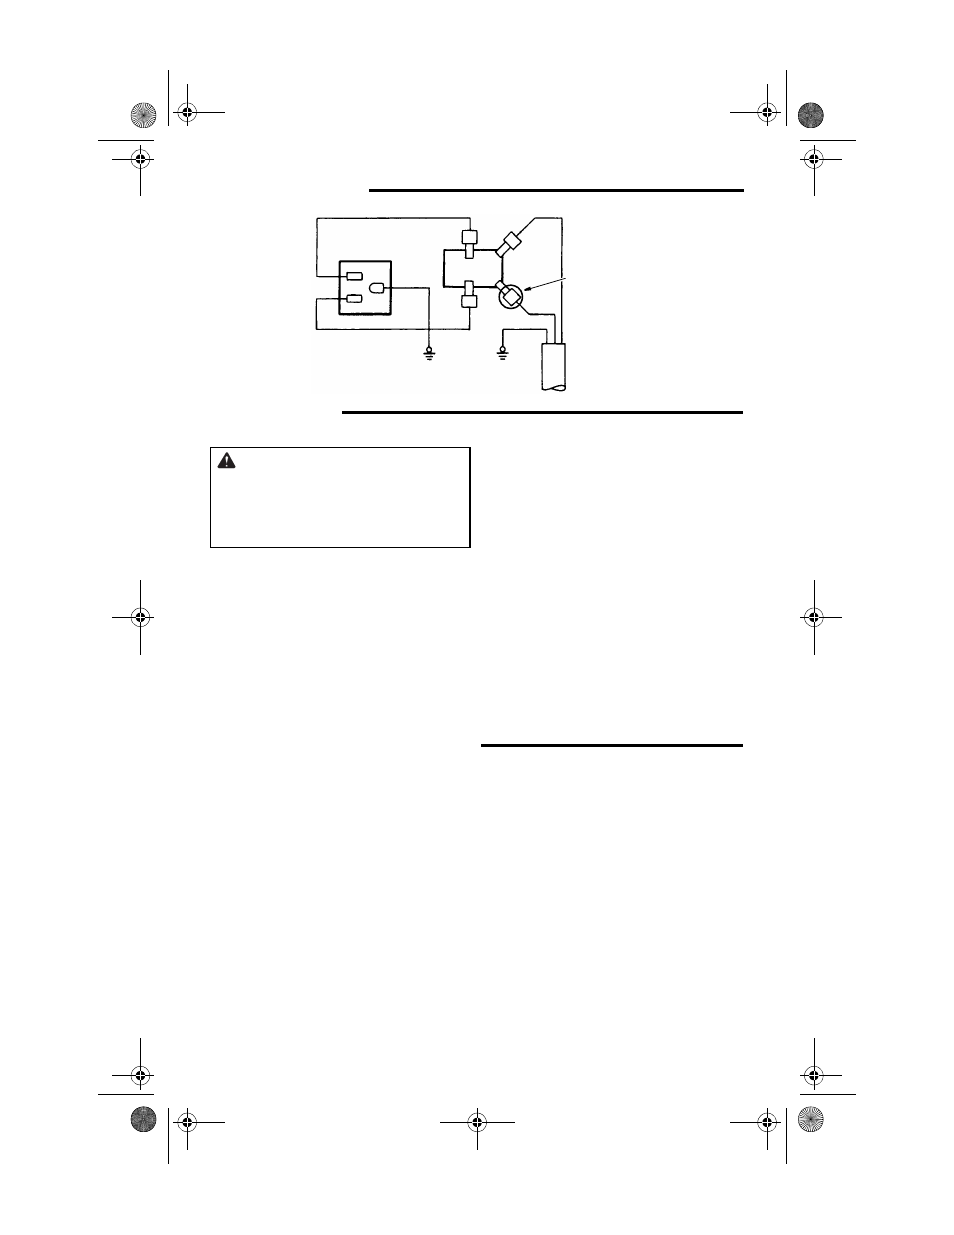 hight resolution of wiring diagram maintenance recommended accessories ridgid wl1200ls1 user manual page 47 56